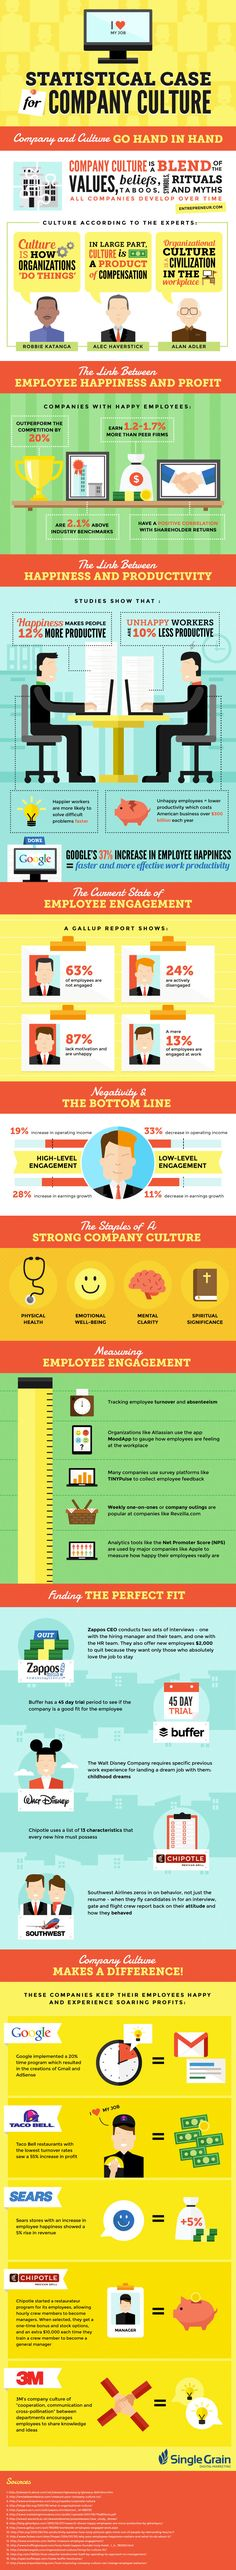 It Really Pays to Have a Rich Company Culture [Infographic]